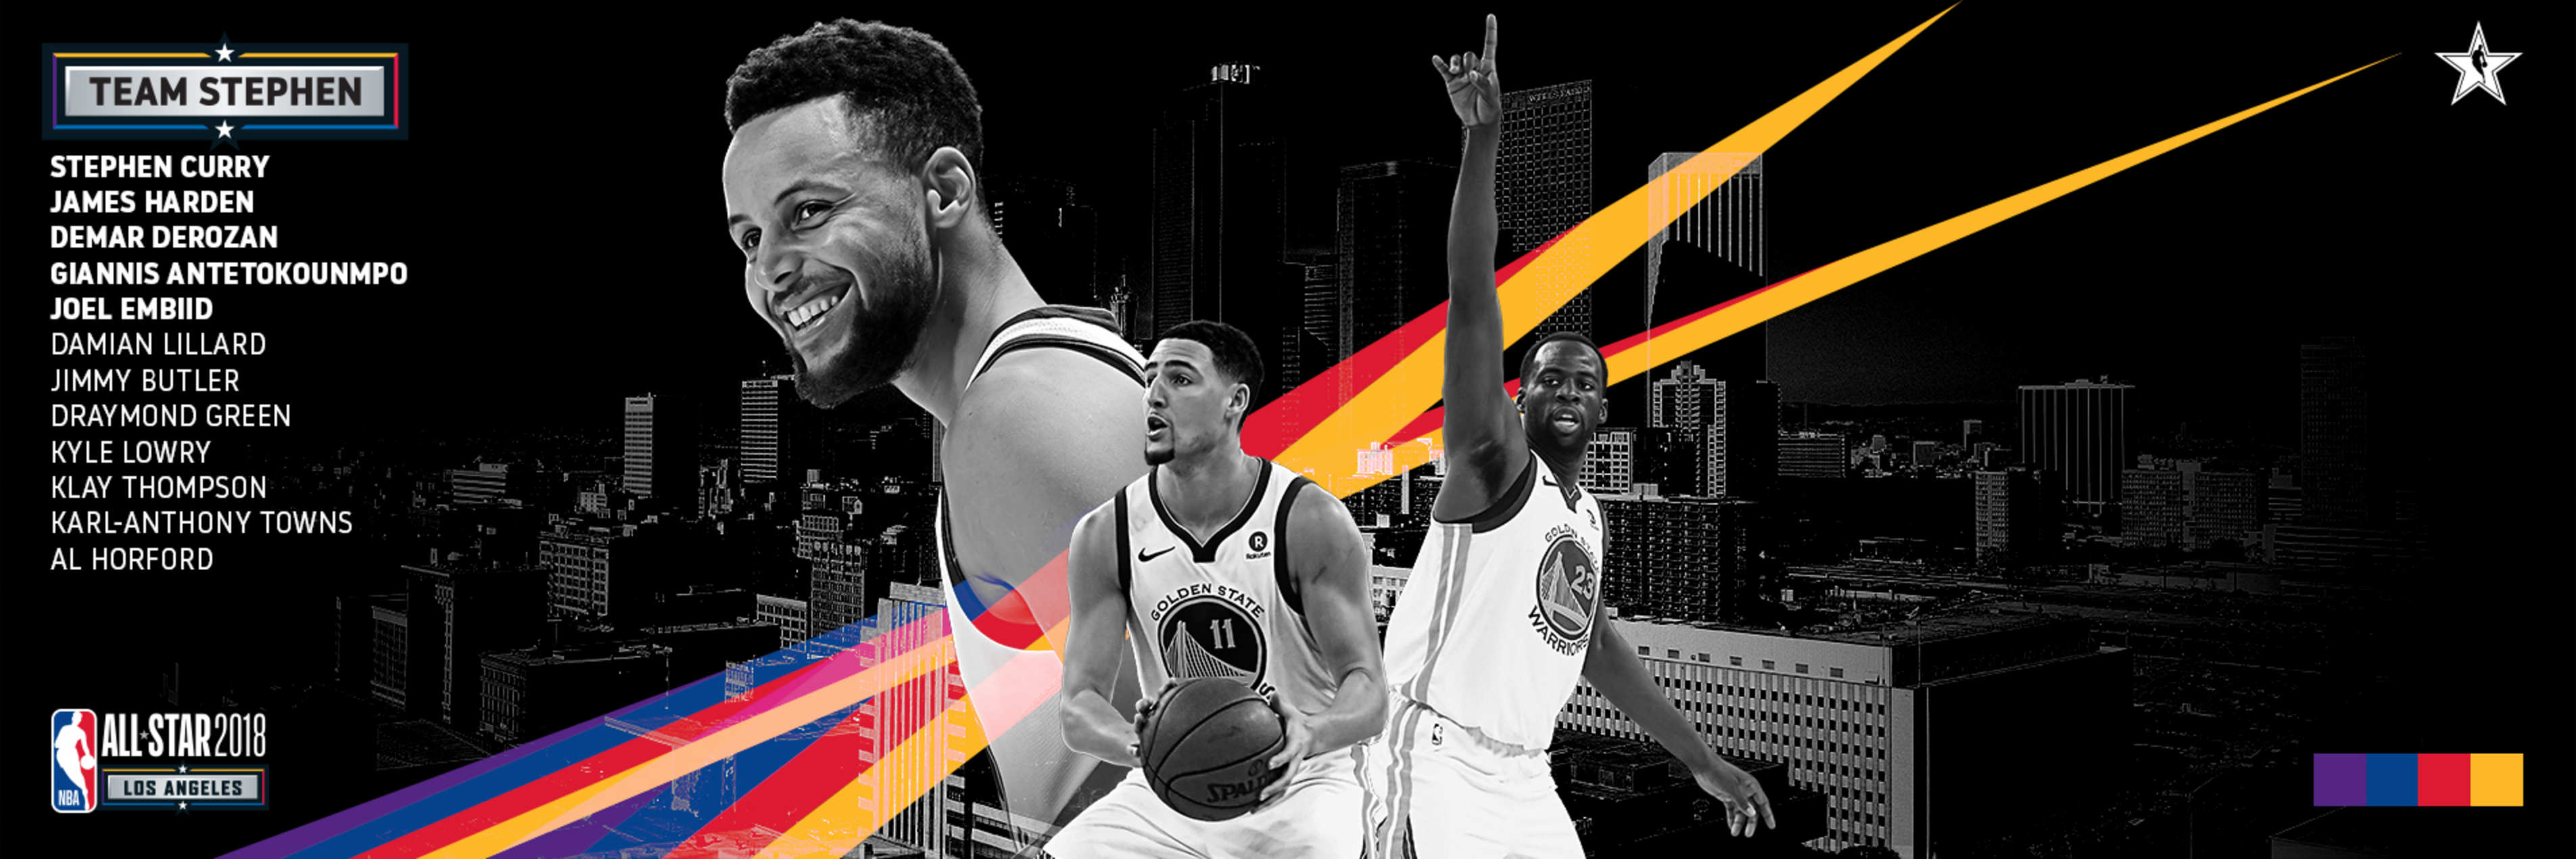 acvys Team Stephen to Feature Three Warriors at 2018 NBA All-Star Game f33cebd73